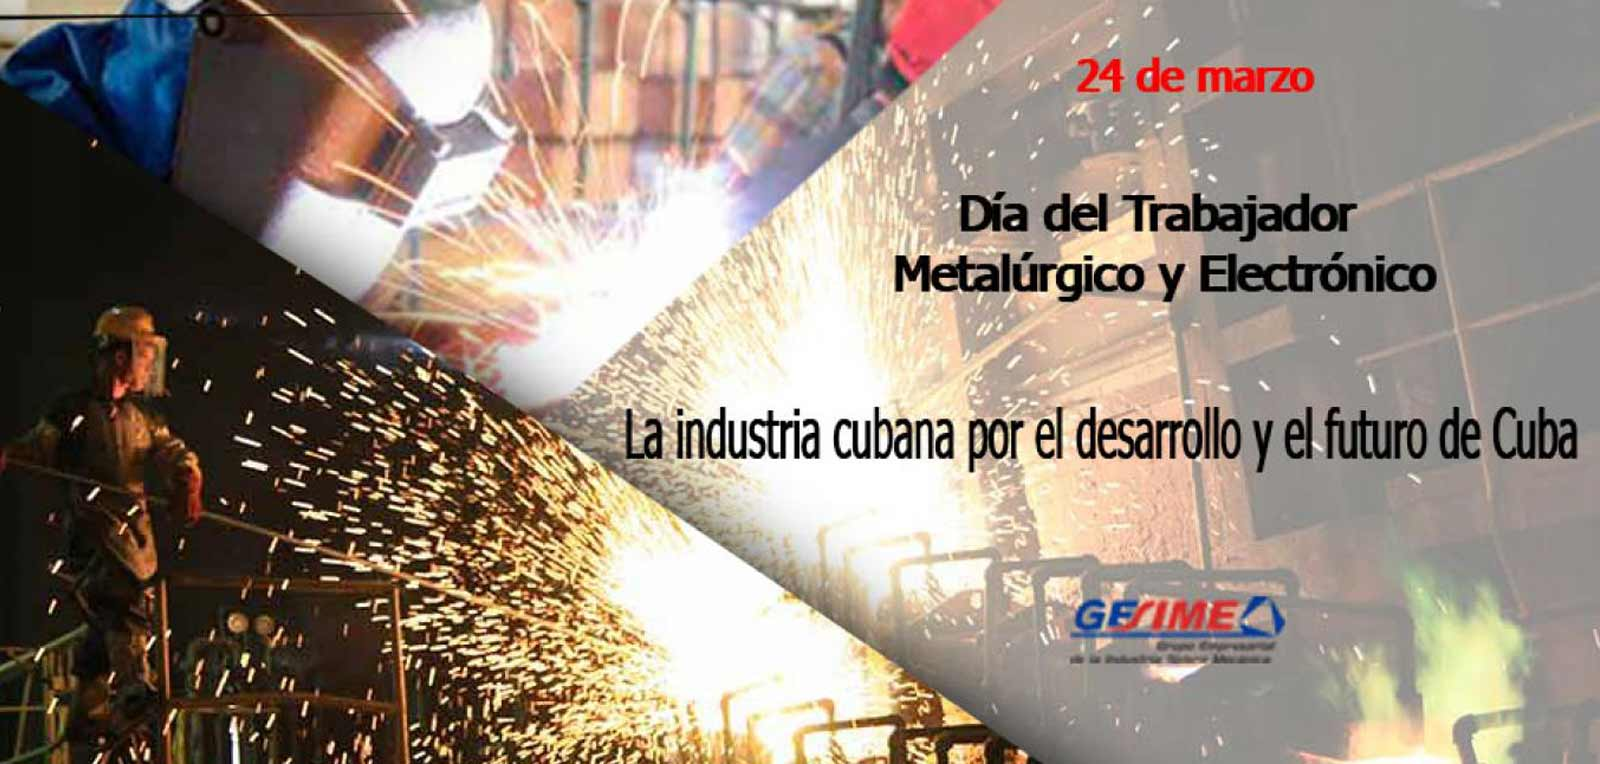 The Business Group of the Sidero Mechanical Industry (GESIME) of celebration